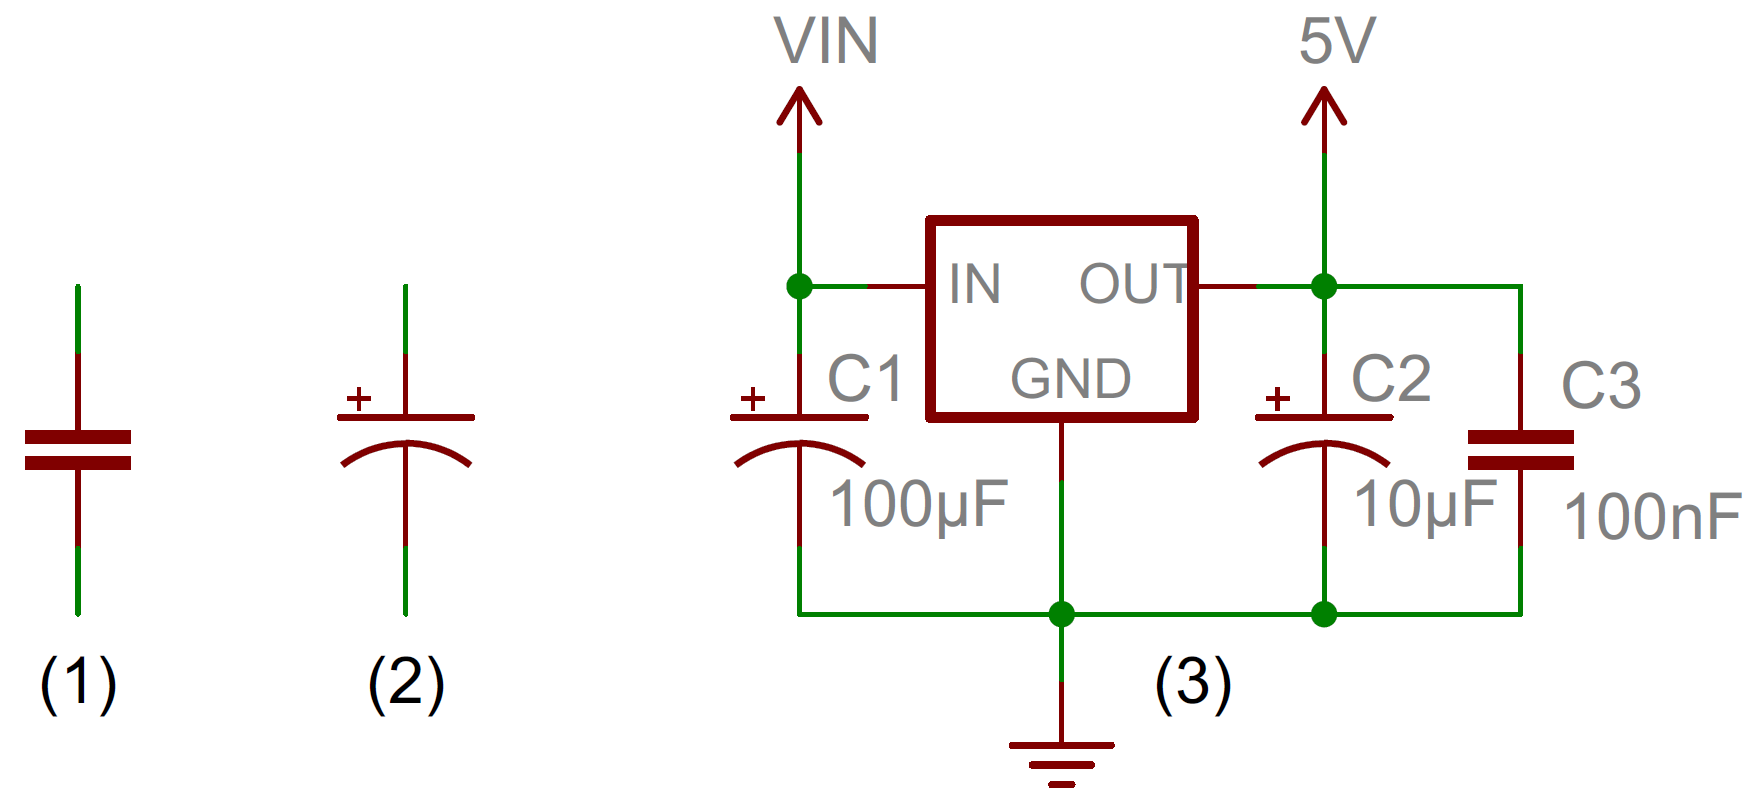 Capacitors Basic Dc Theory Circuit Analysis All Of The Capacitor Symbols